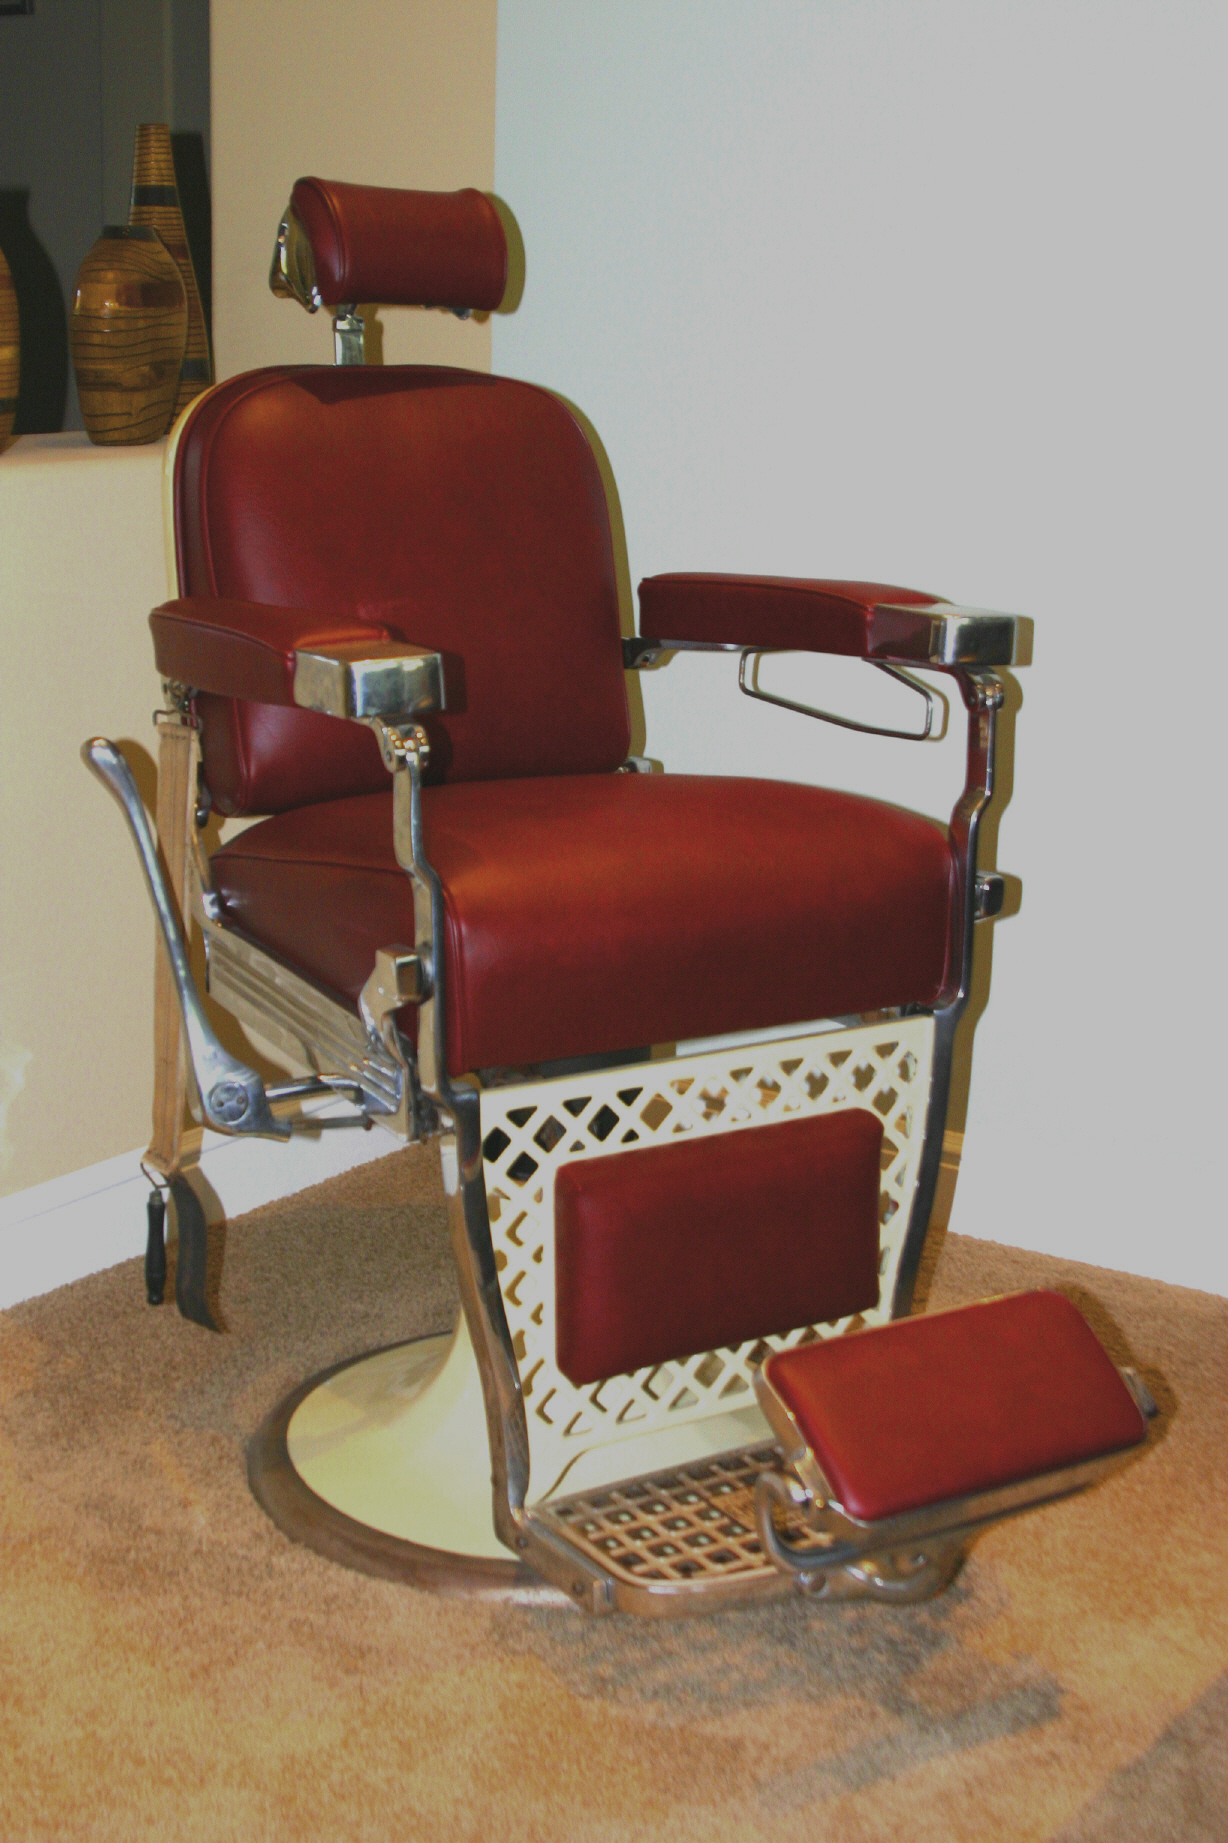 Shop Chairs Barber Chair Barbers And Antiques On Pinterest